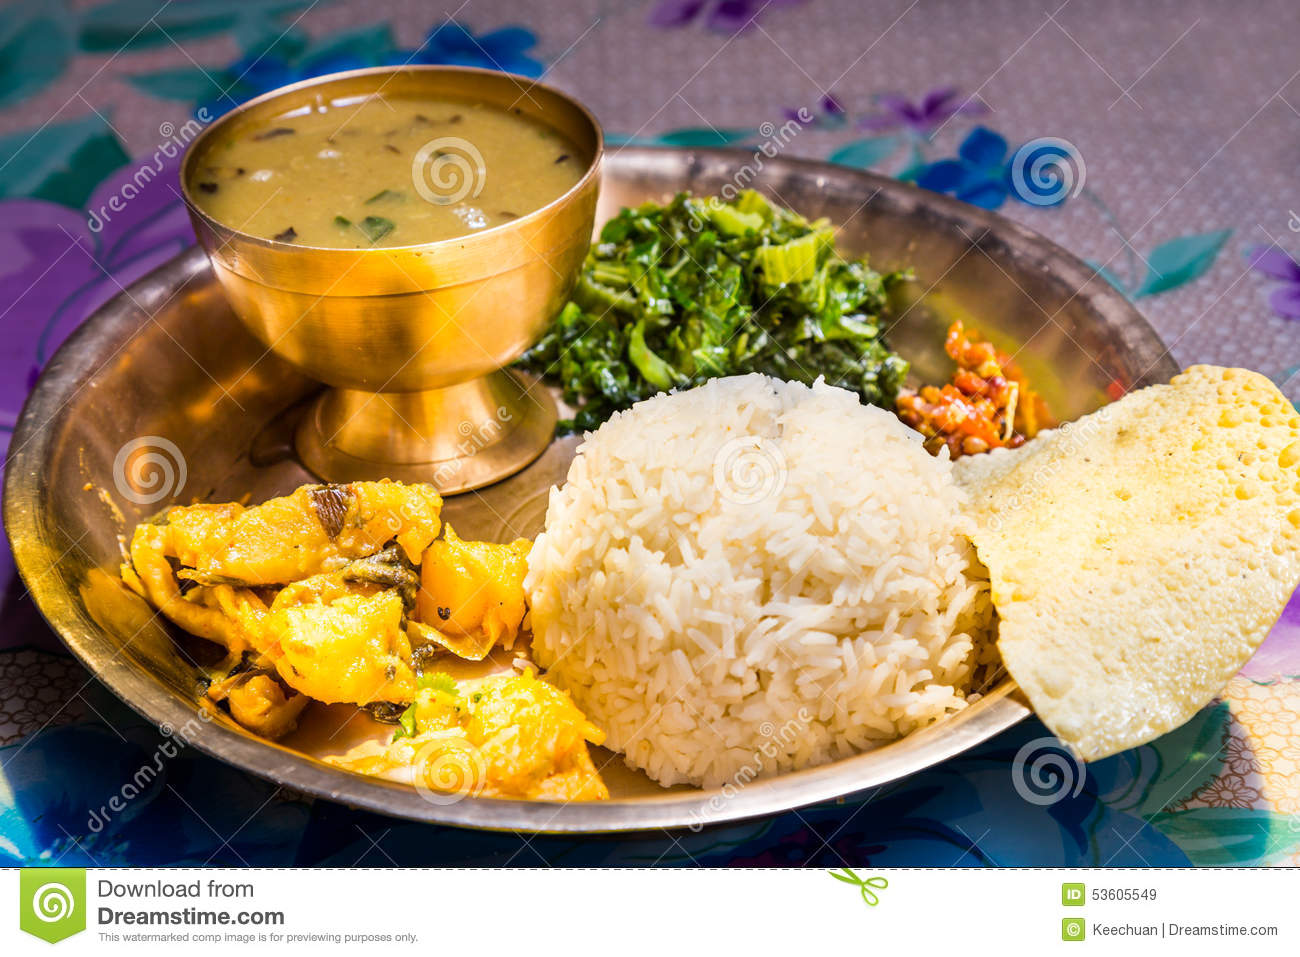 Dal Bhat, traditional Nepali meal platter with rice, lentils soup, vegetables, papadum and spices